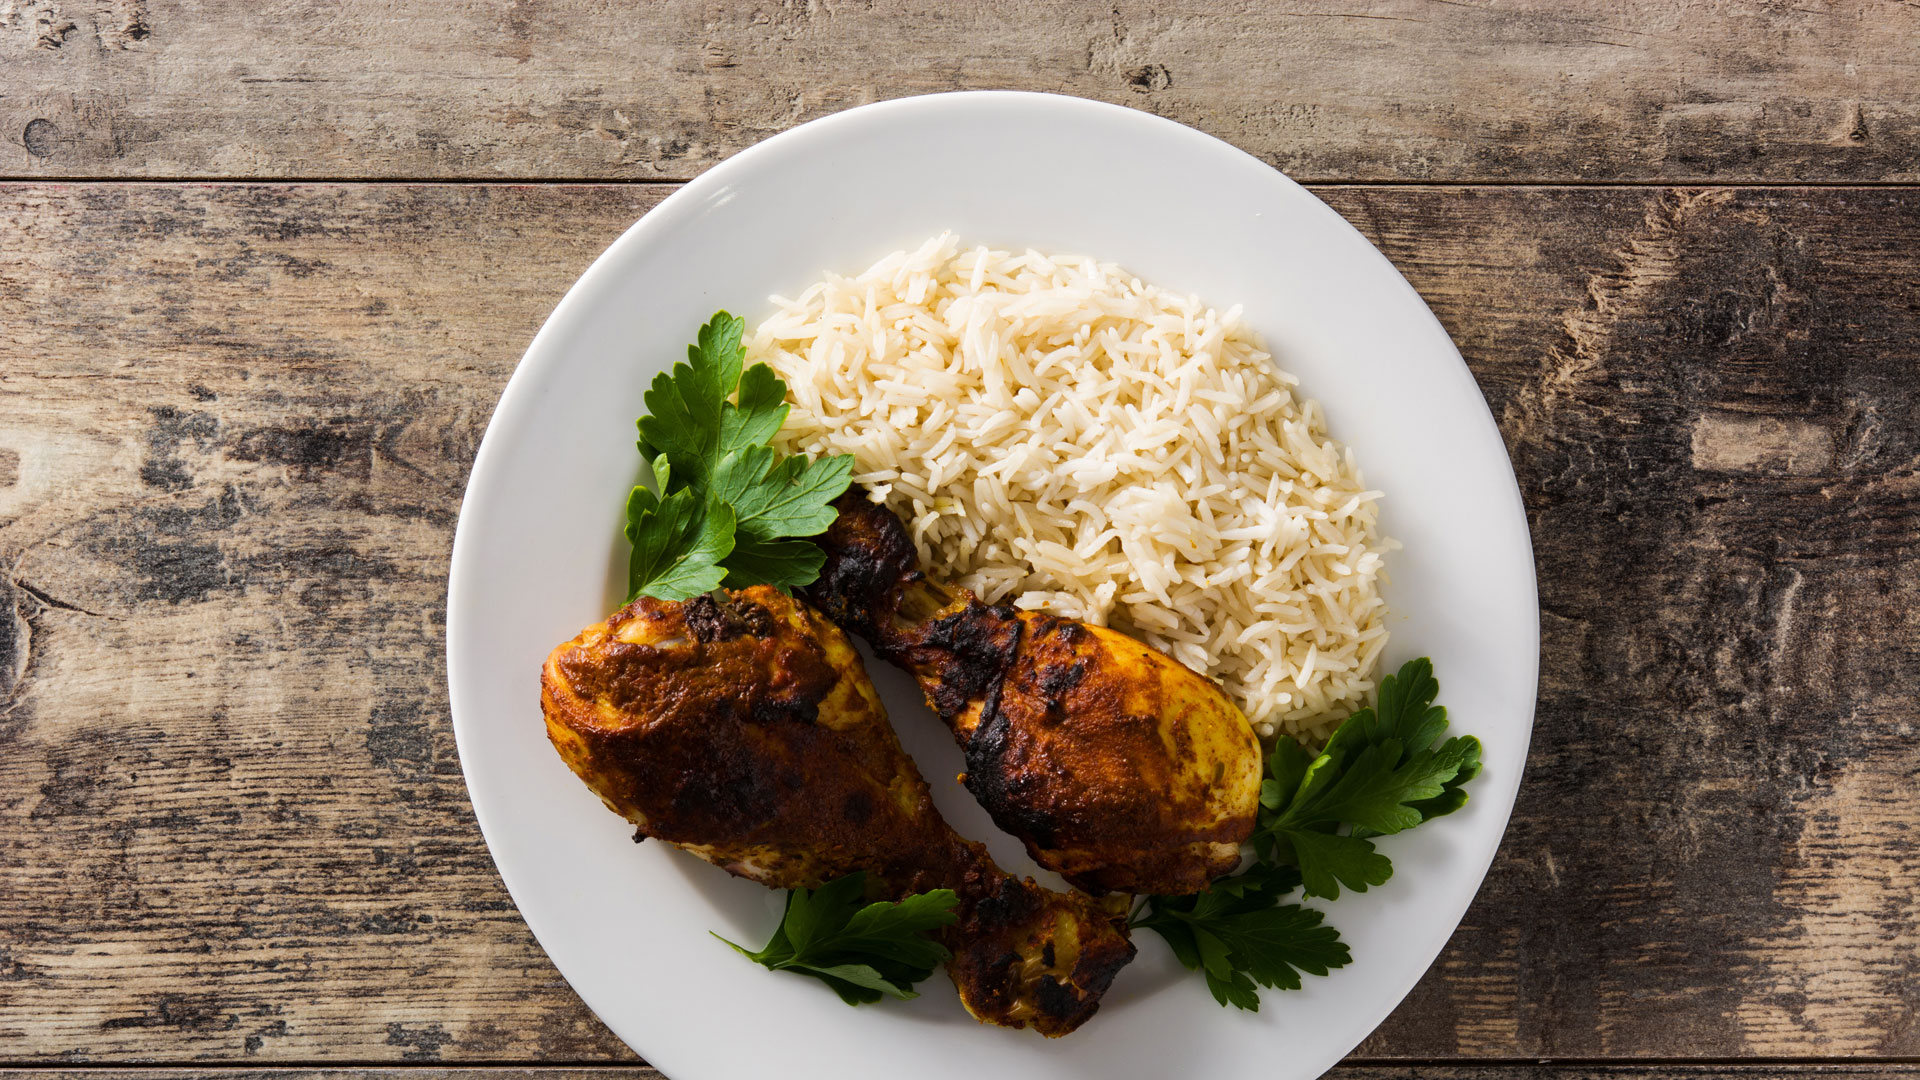 435-rosted-tandoori-chicken-rice-1920